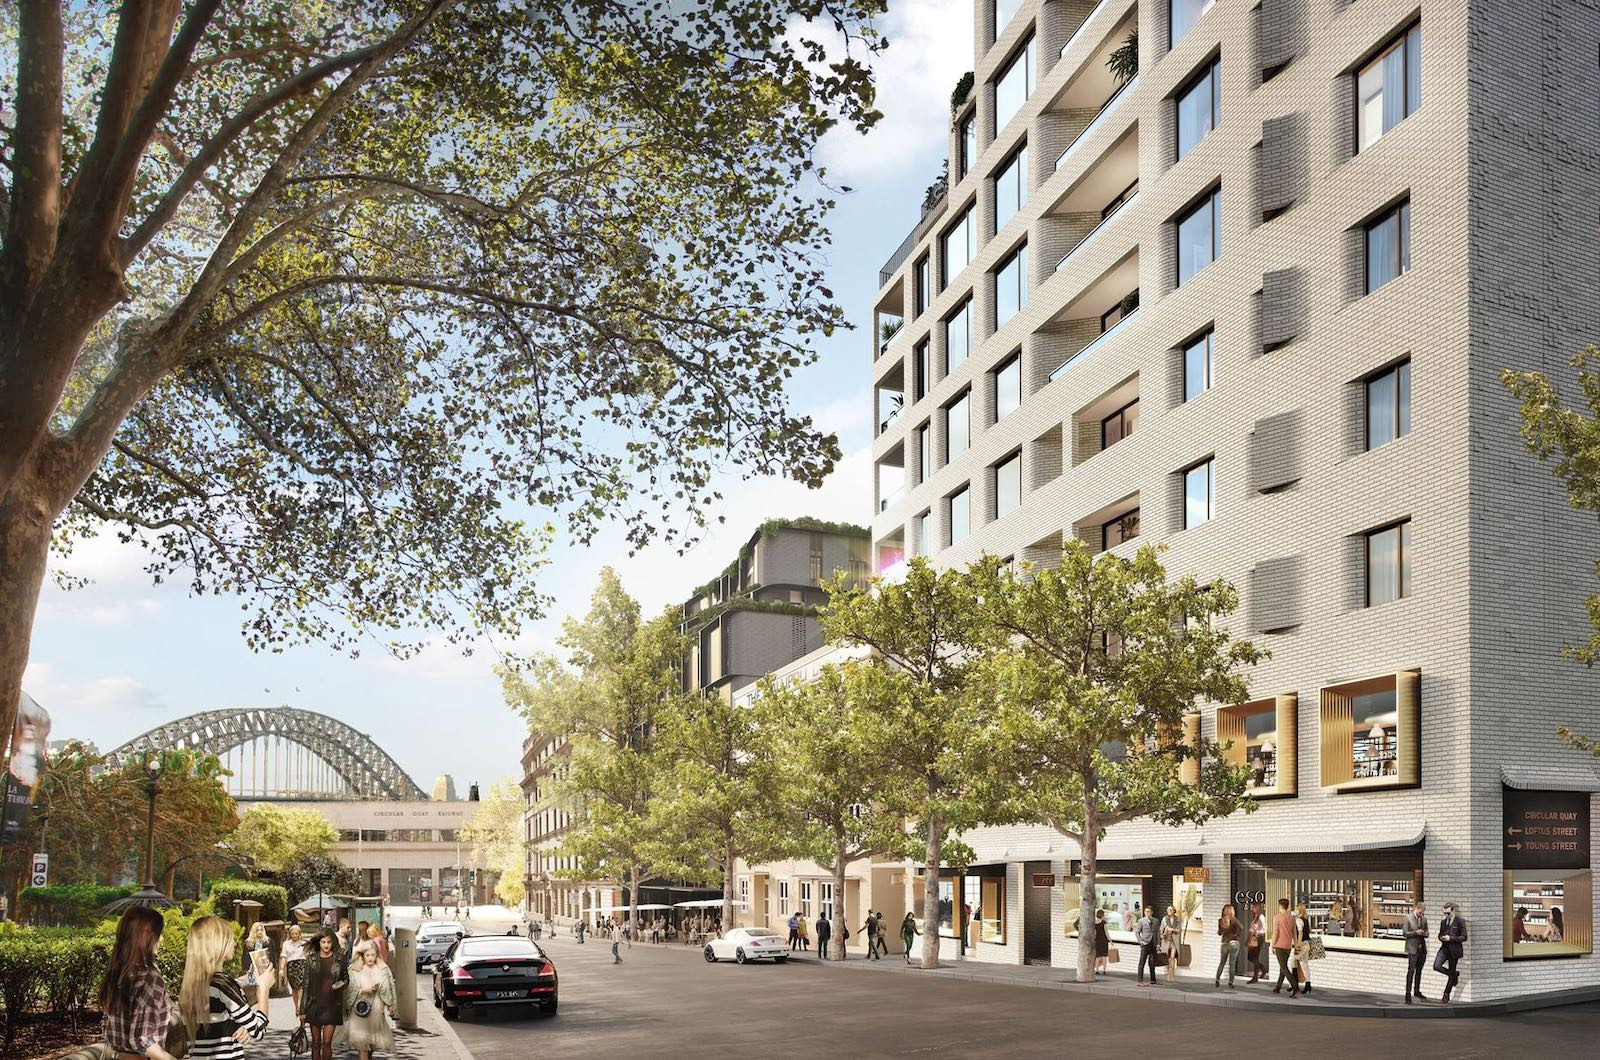 Off the plan buyer success in Sydney's Loftus Lane development